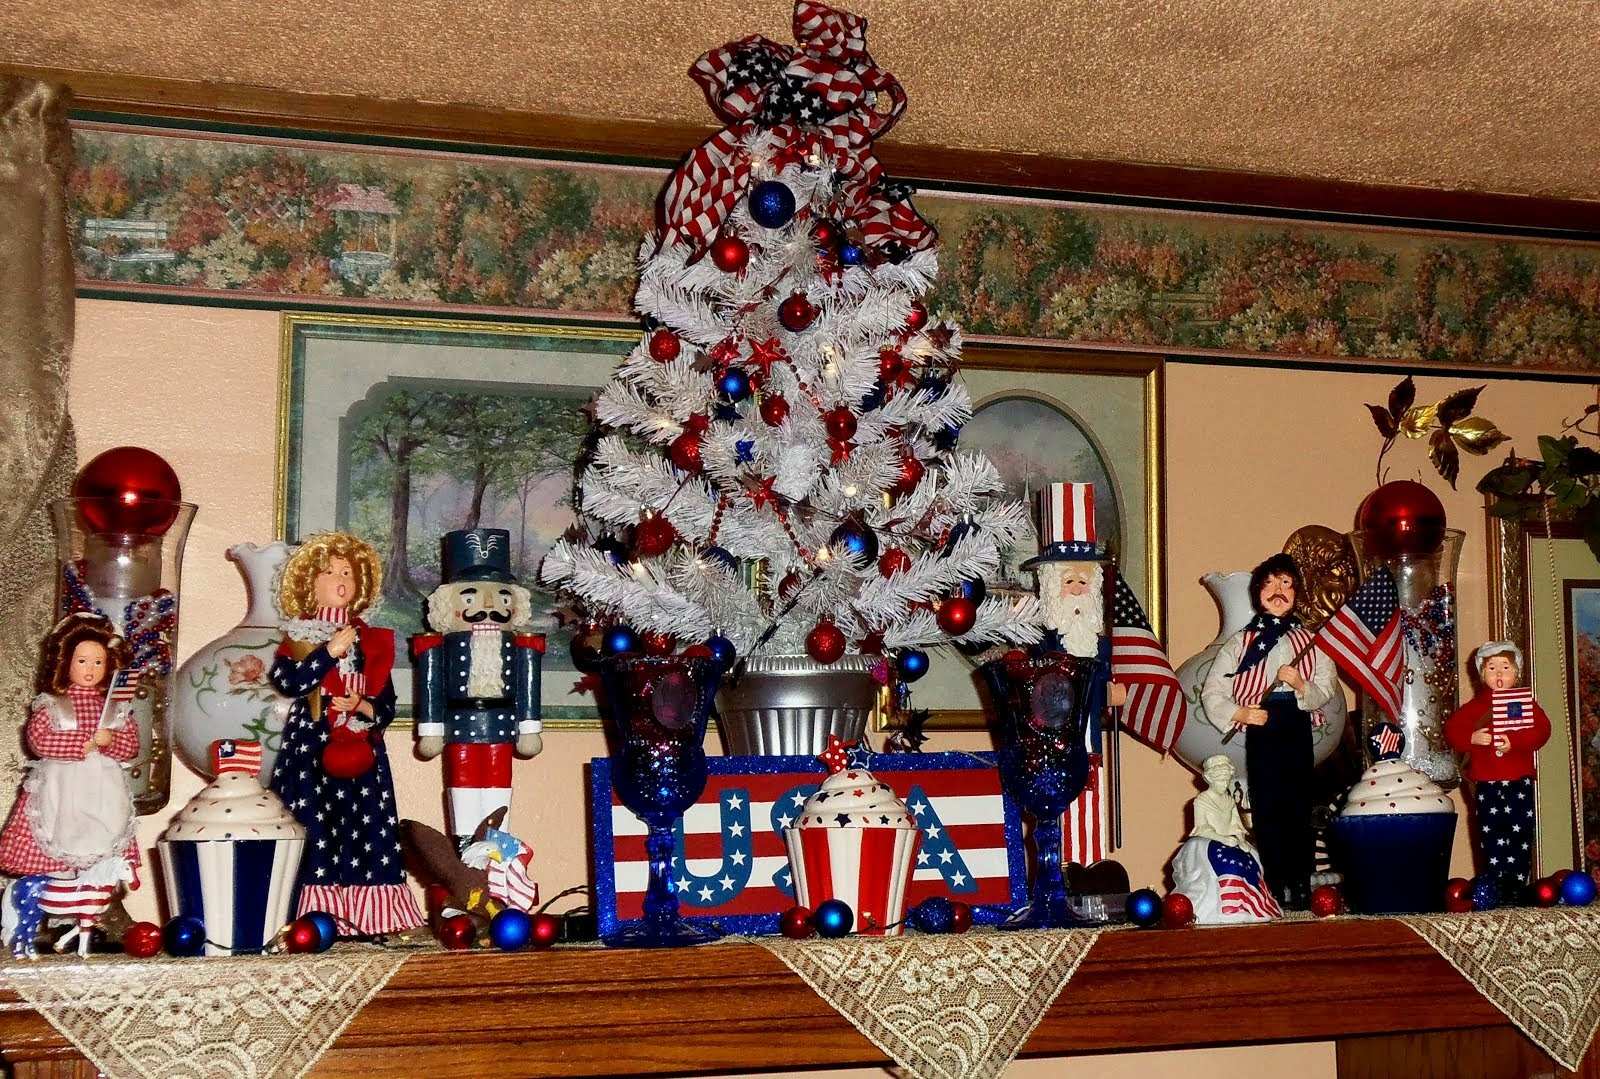 My Patriotic Decor, Part 2, 2014